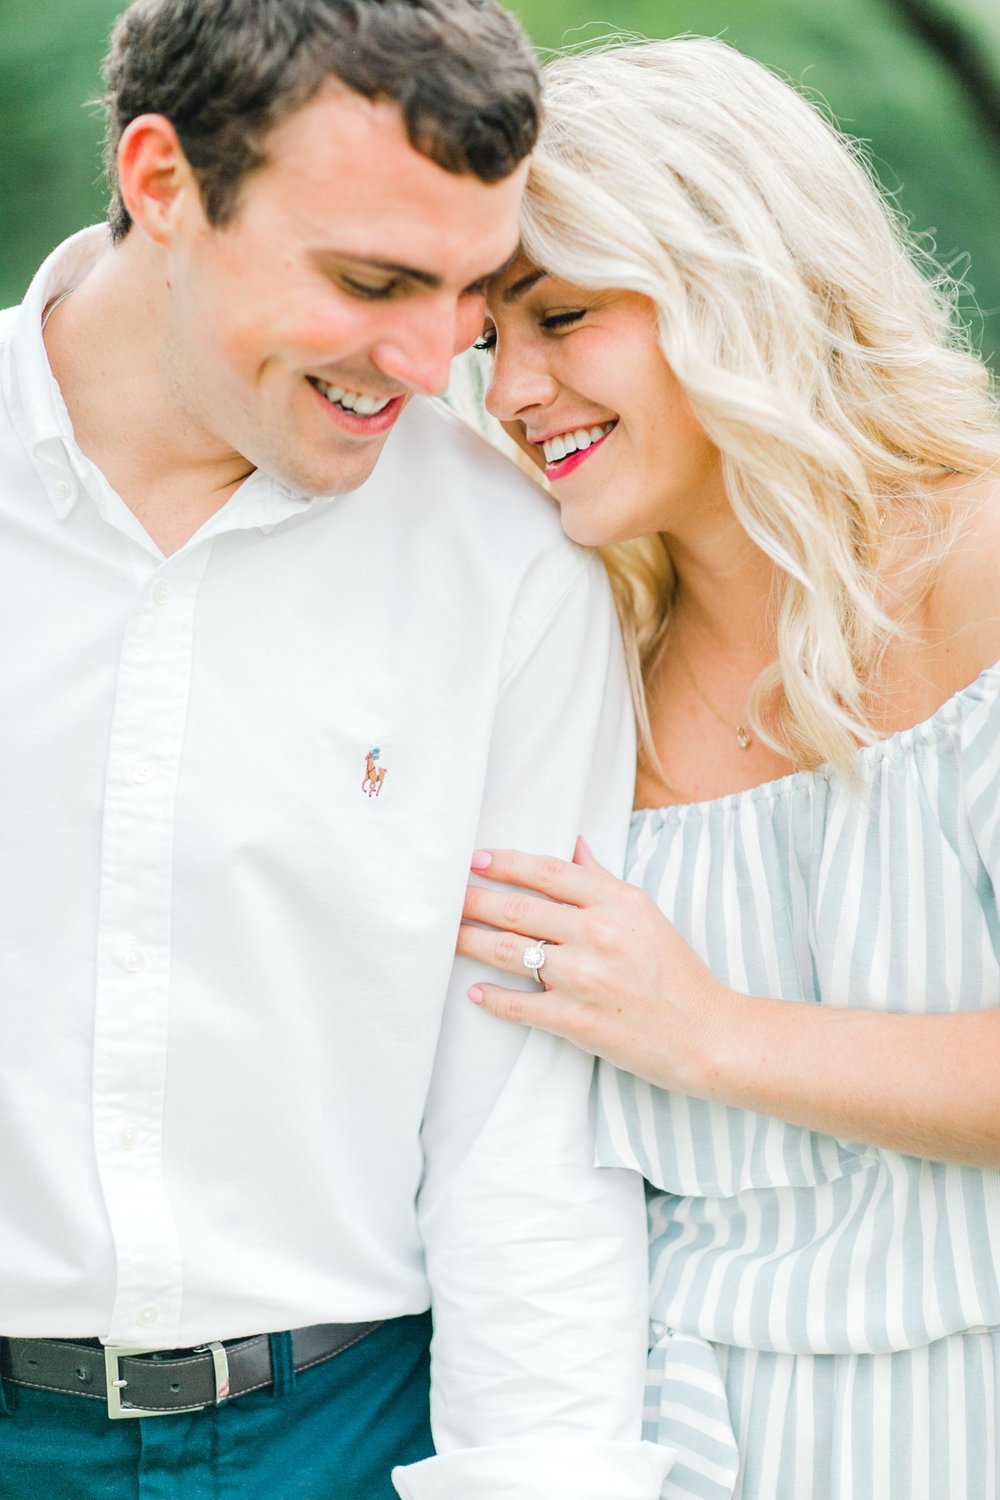 Allison_and_Clay_Smart_Engagements_ALLEEJ_Lubbock_Photographer_0009.jpg